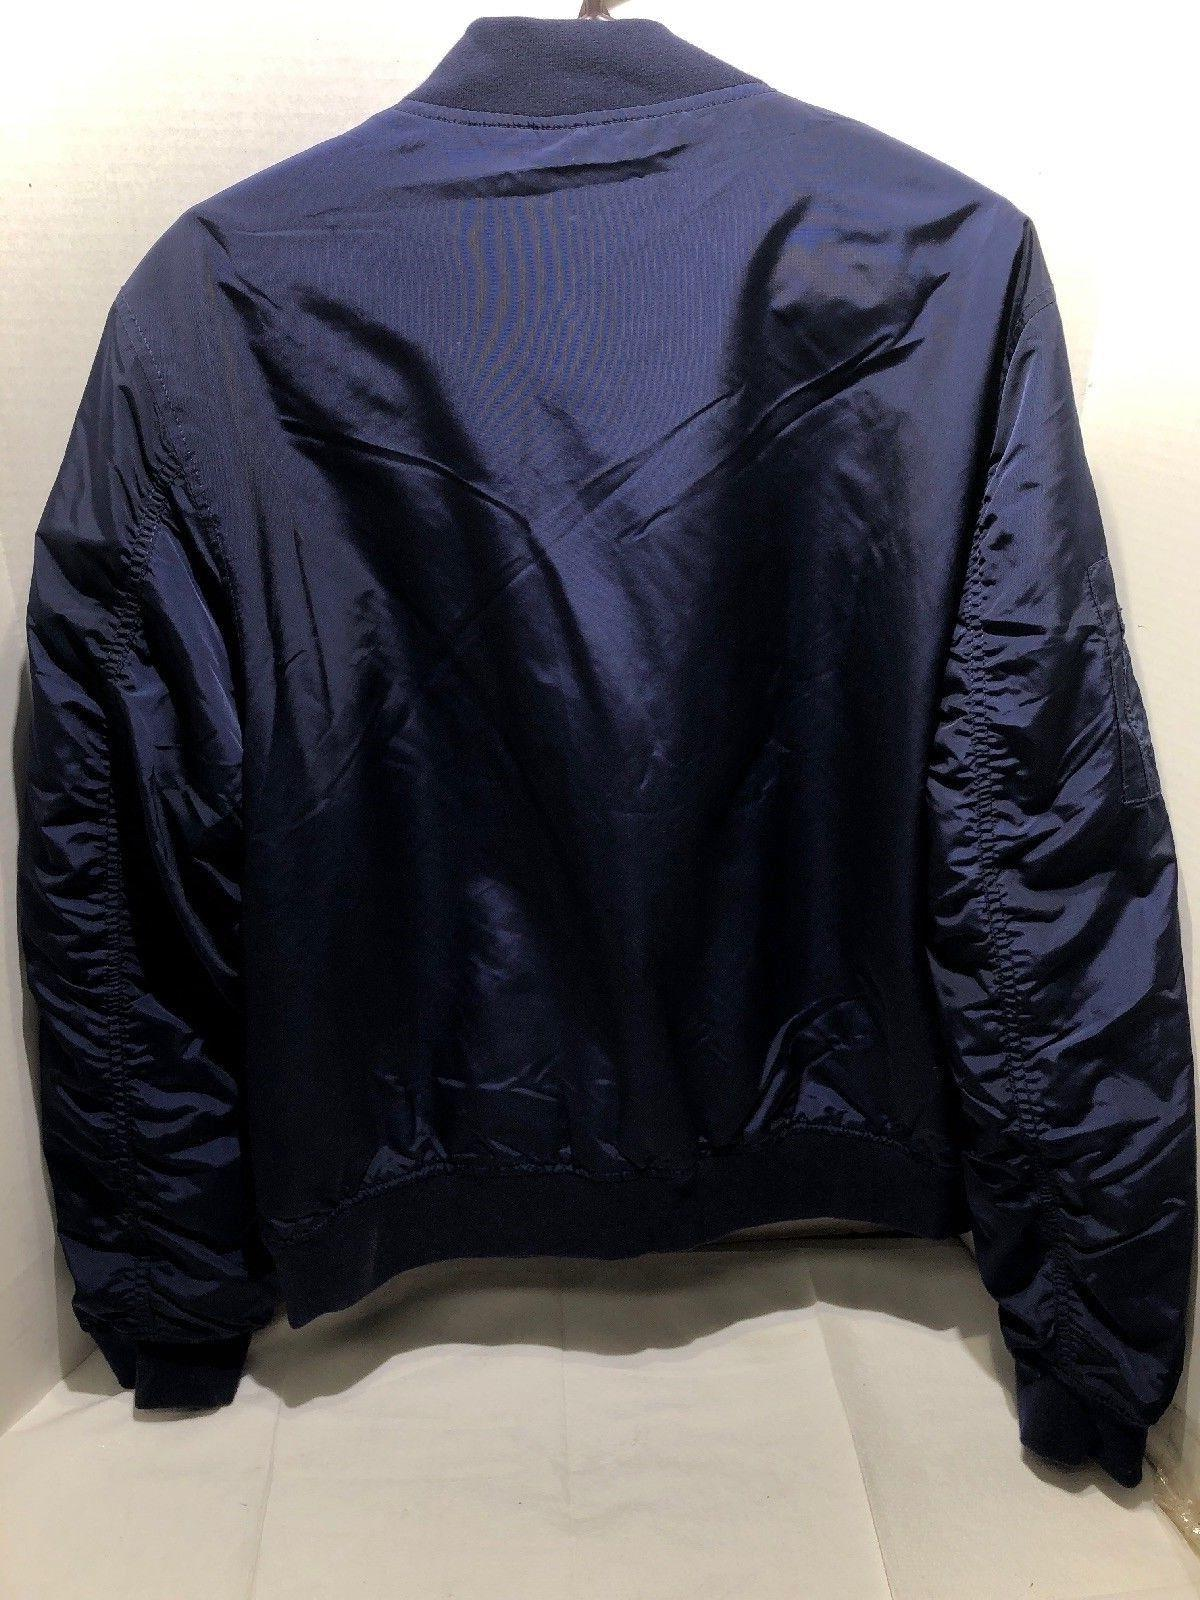 Goodthreads Men's Bomber Jacket Navy